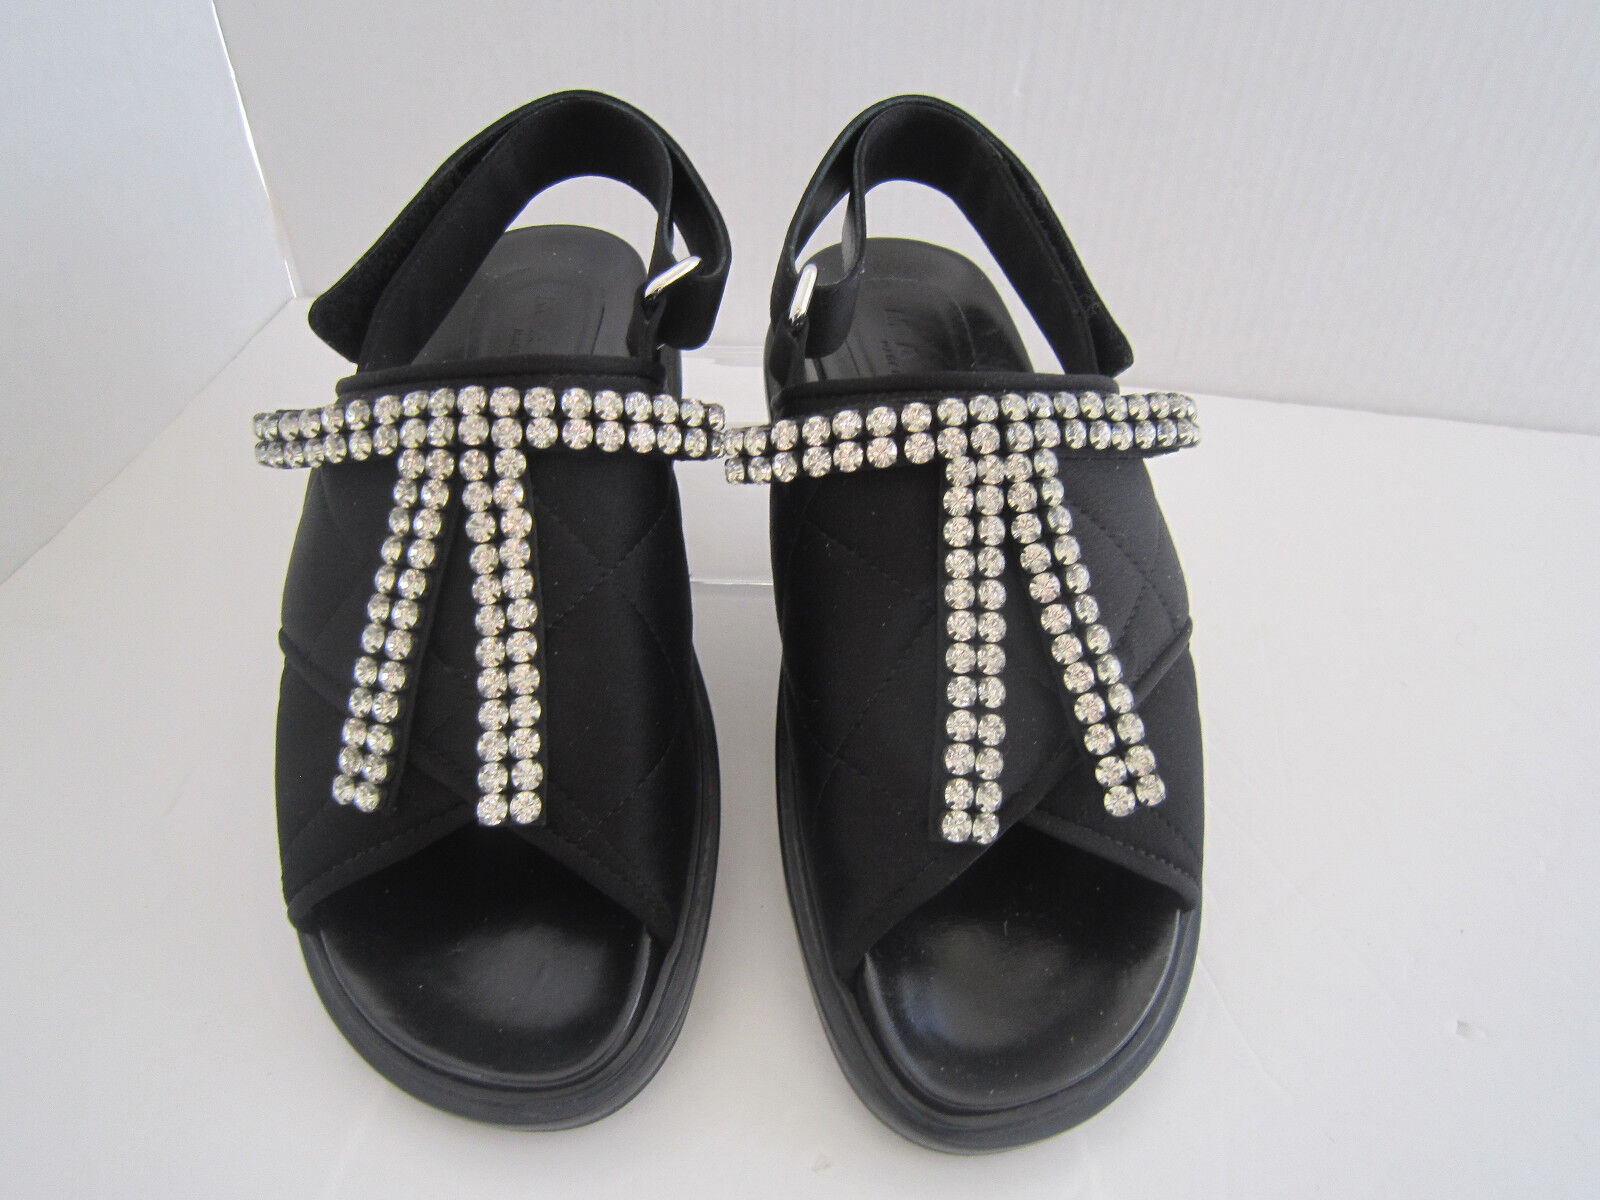 Marni Fussbett Crystal-Embellished nero Quilted-Satin Sandals Sandals Sandals Sz 37 Us 7  800 854a55